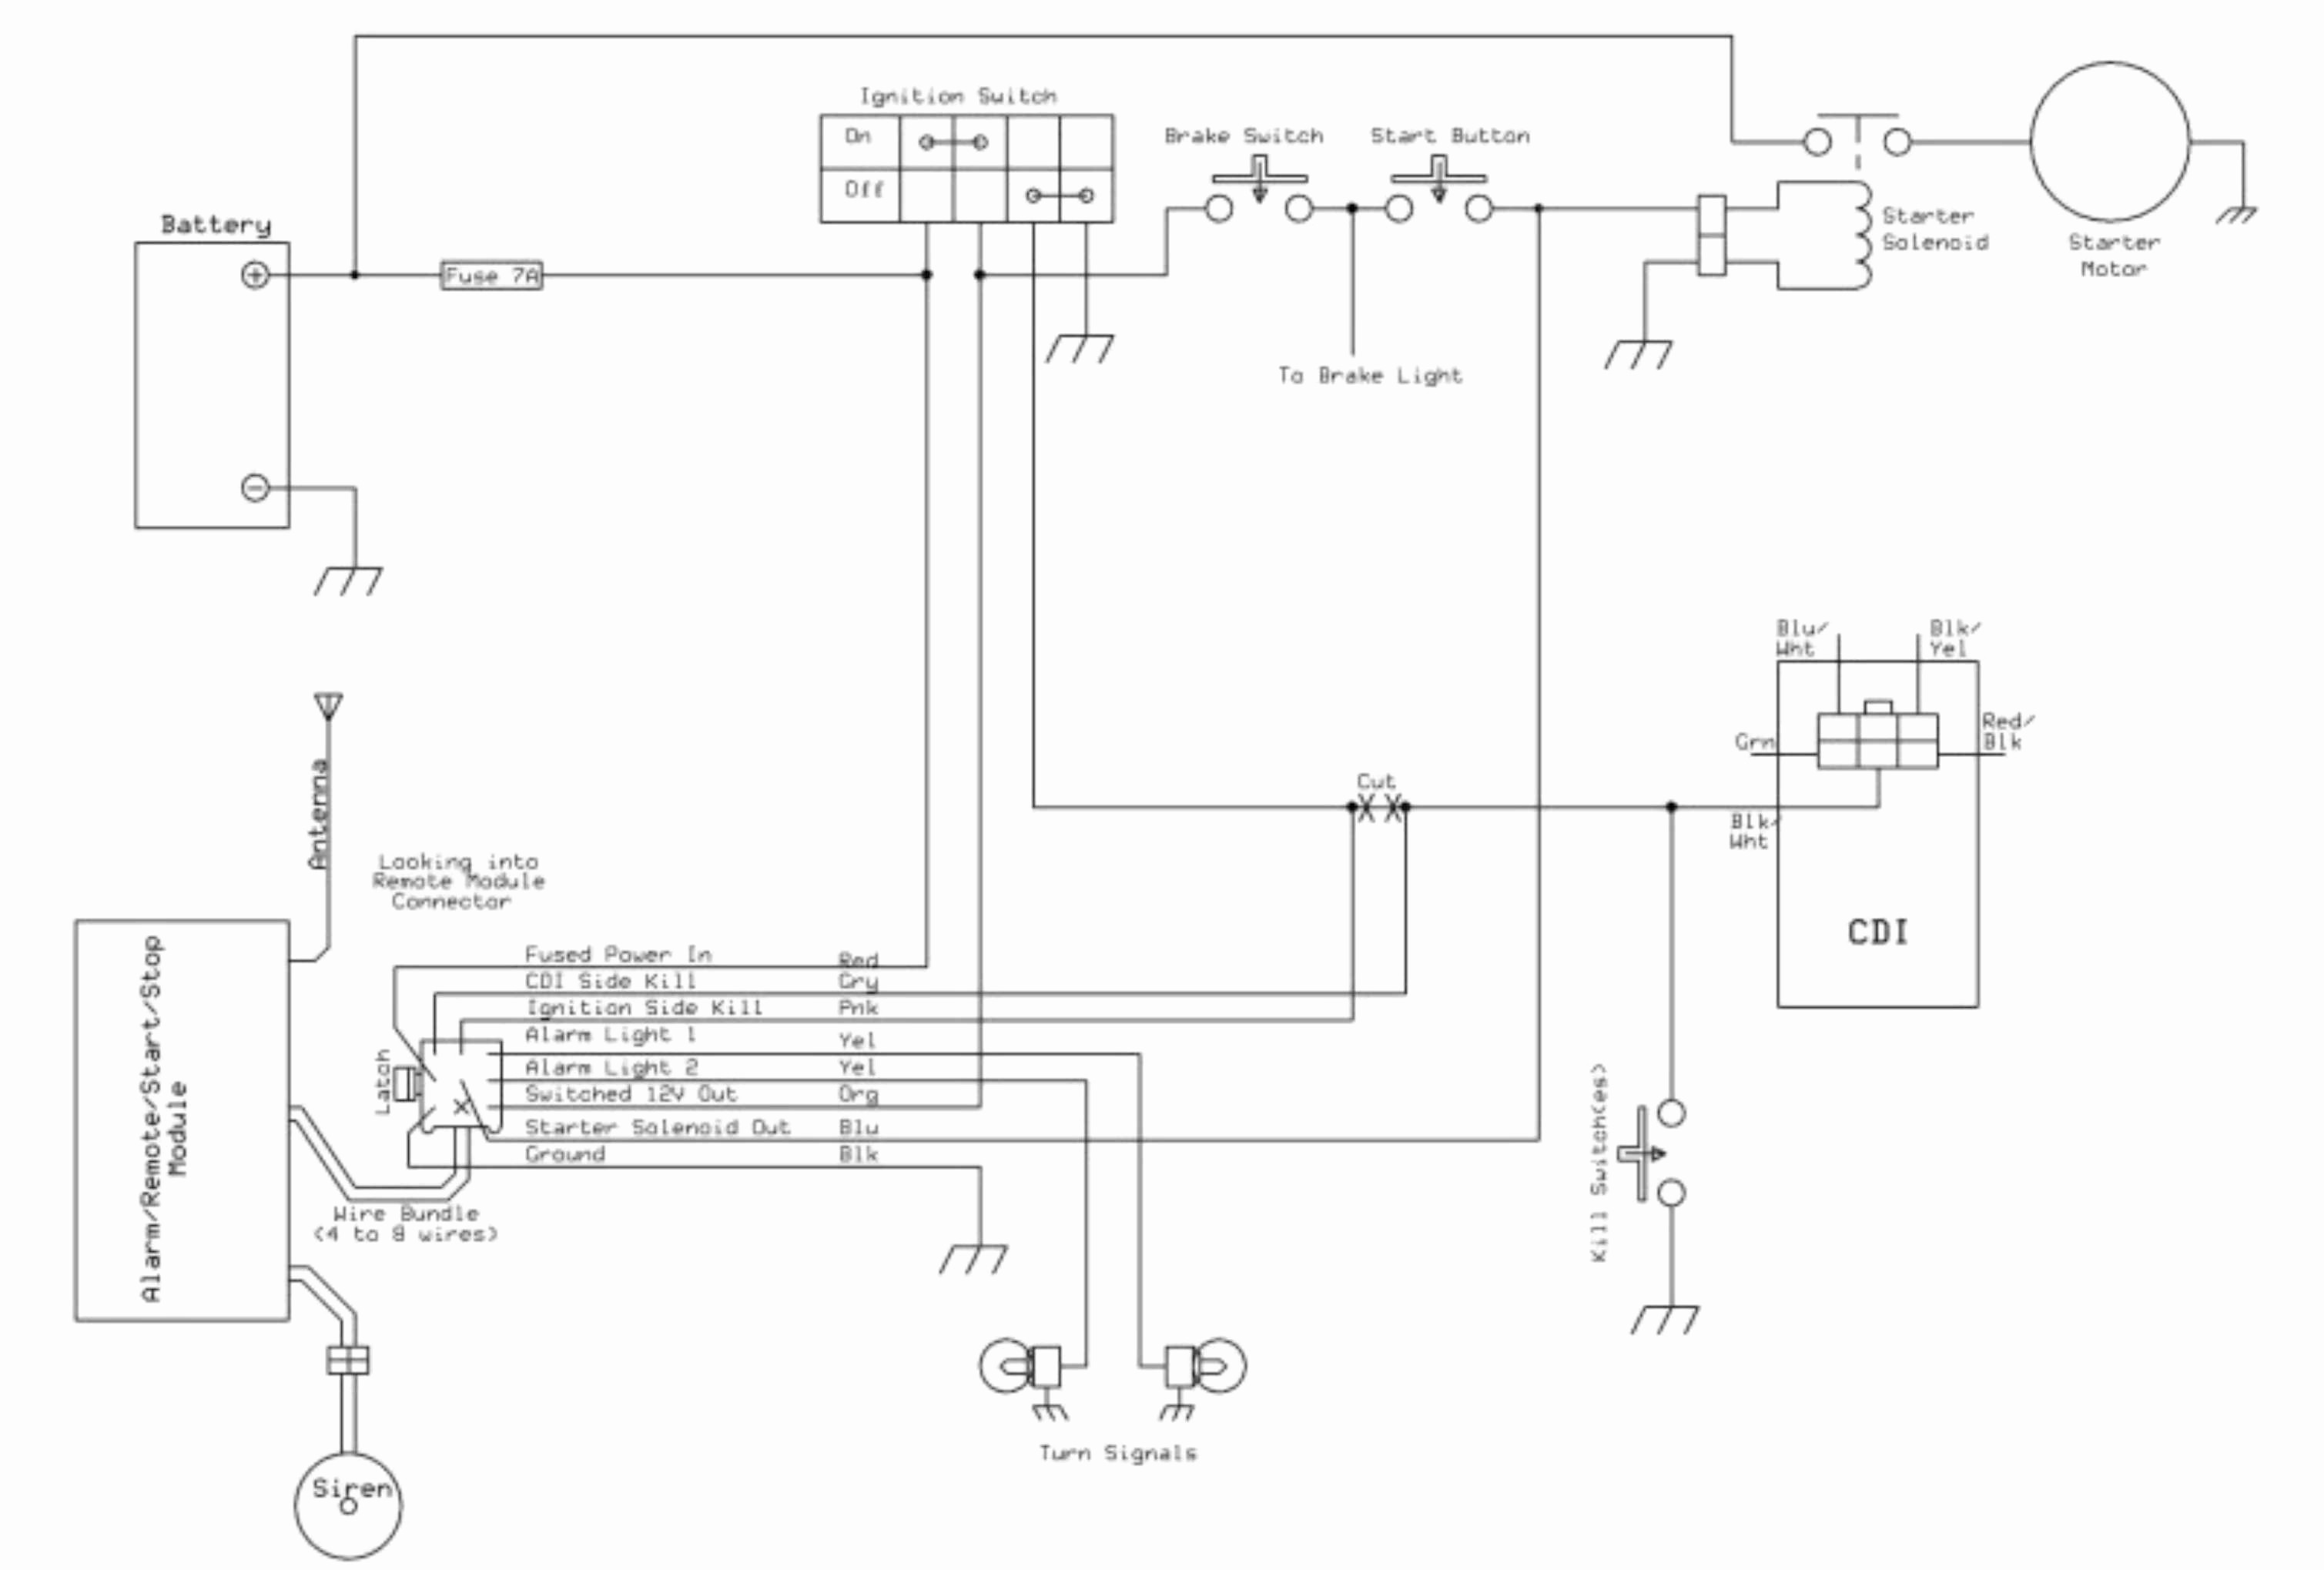 Cc Chinese Atv Cdi Wiring Diagram TaoTao Cc WiringDiagram - Wiring diagram for 110cc 4 wheeler